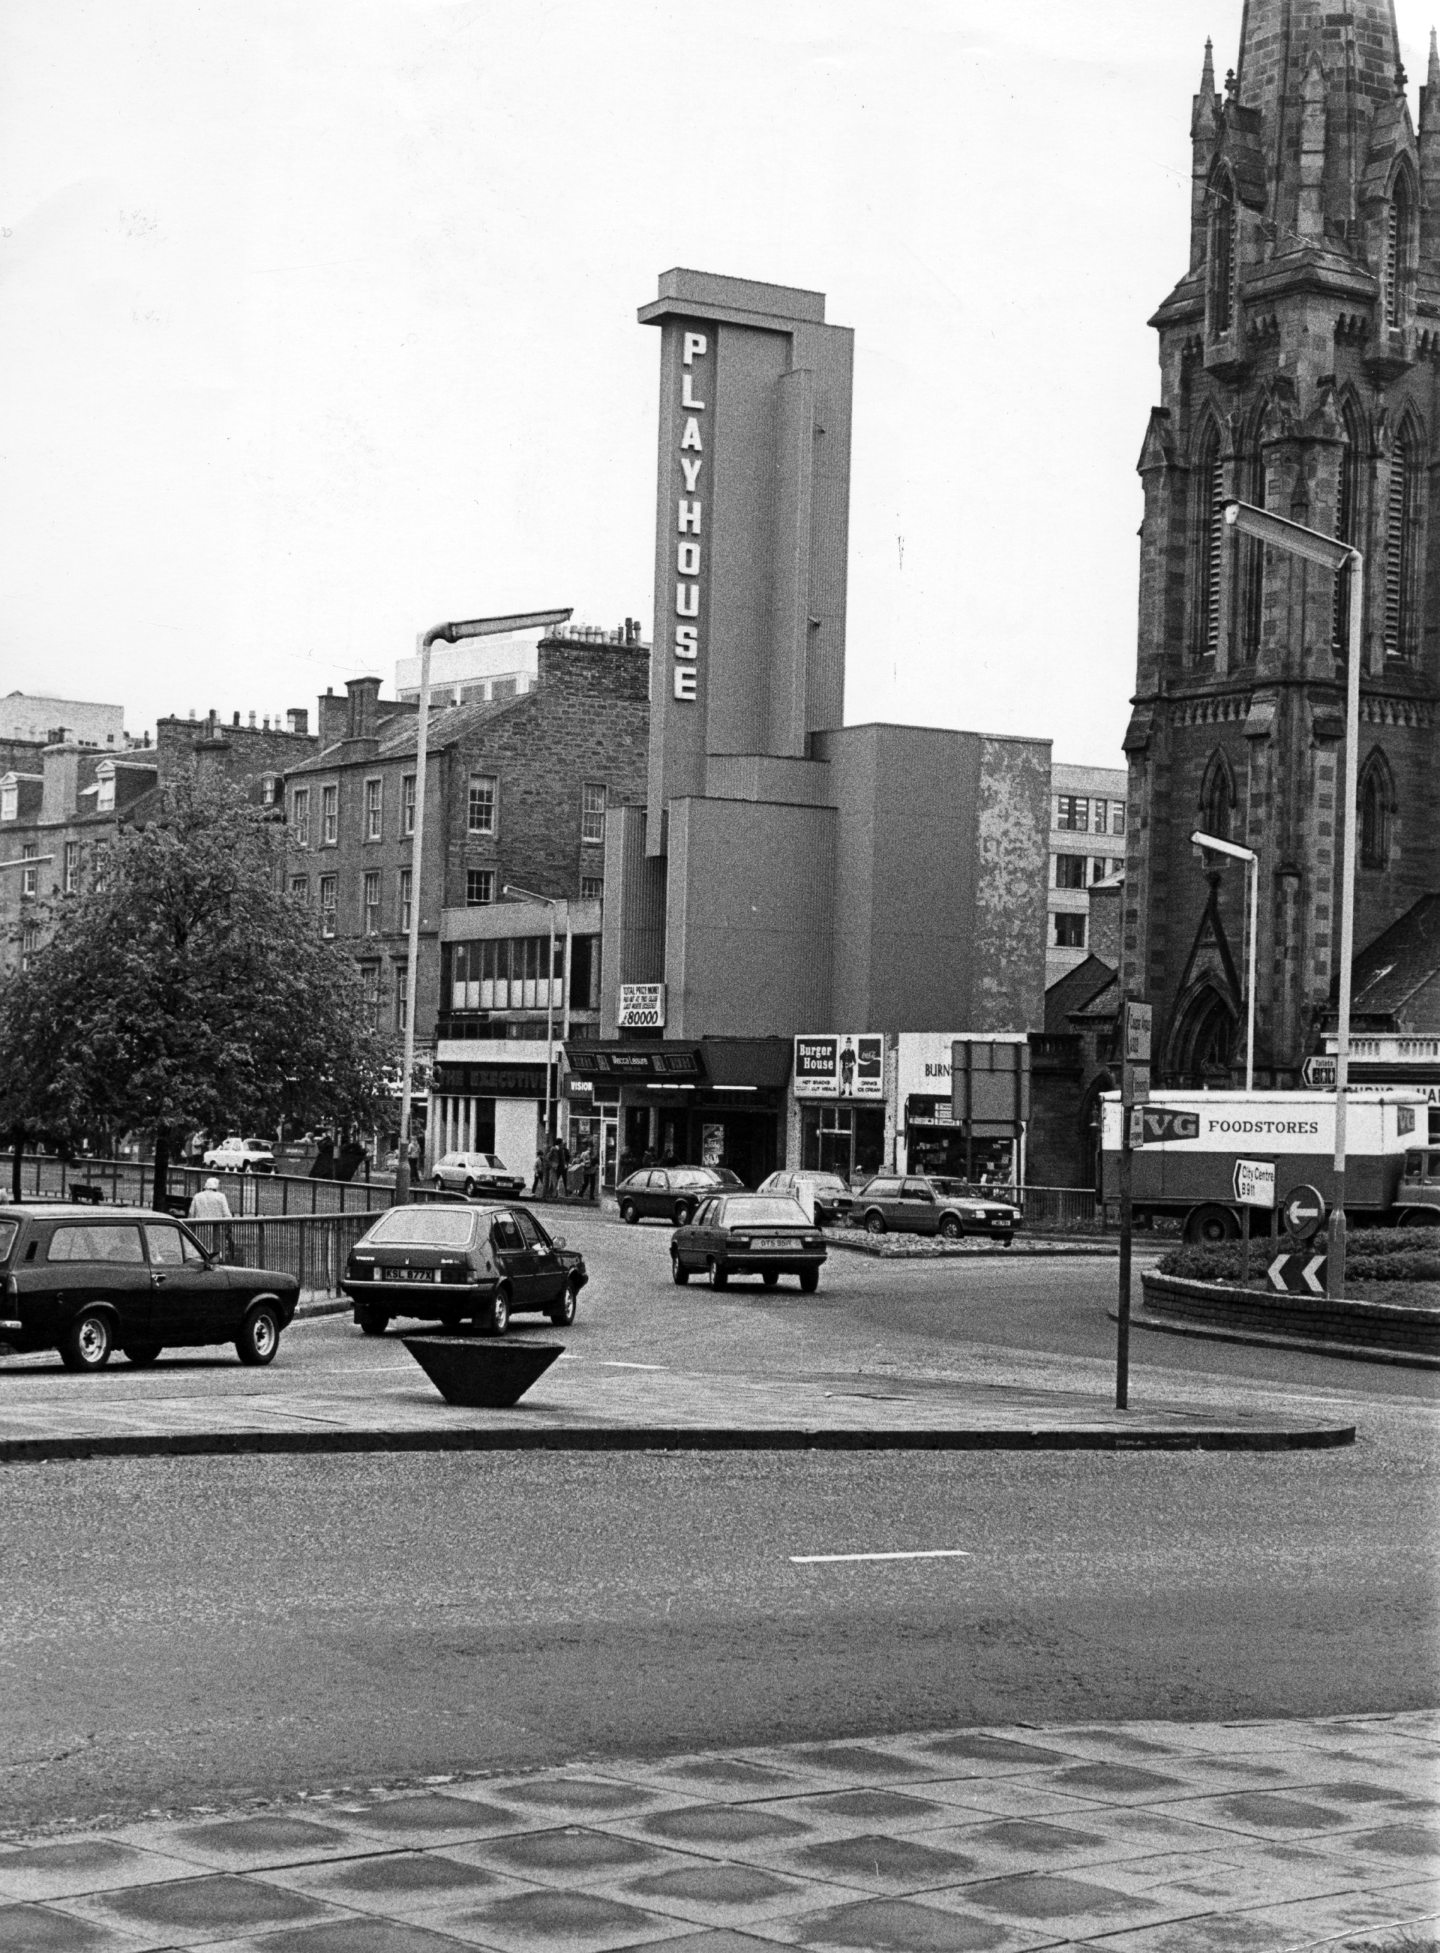 The former Green's Playhouse, Dundee, in 1983.